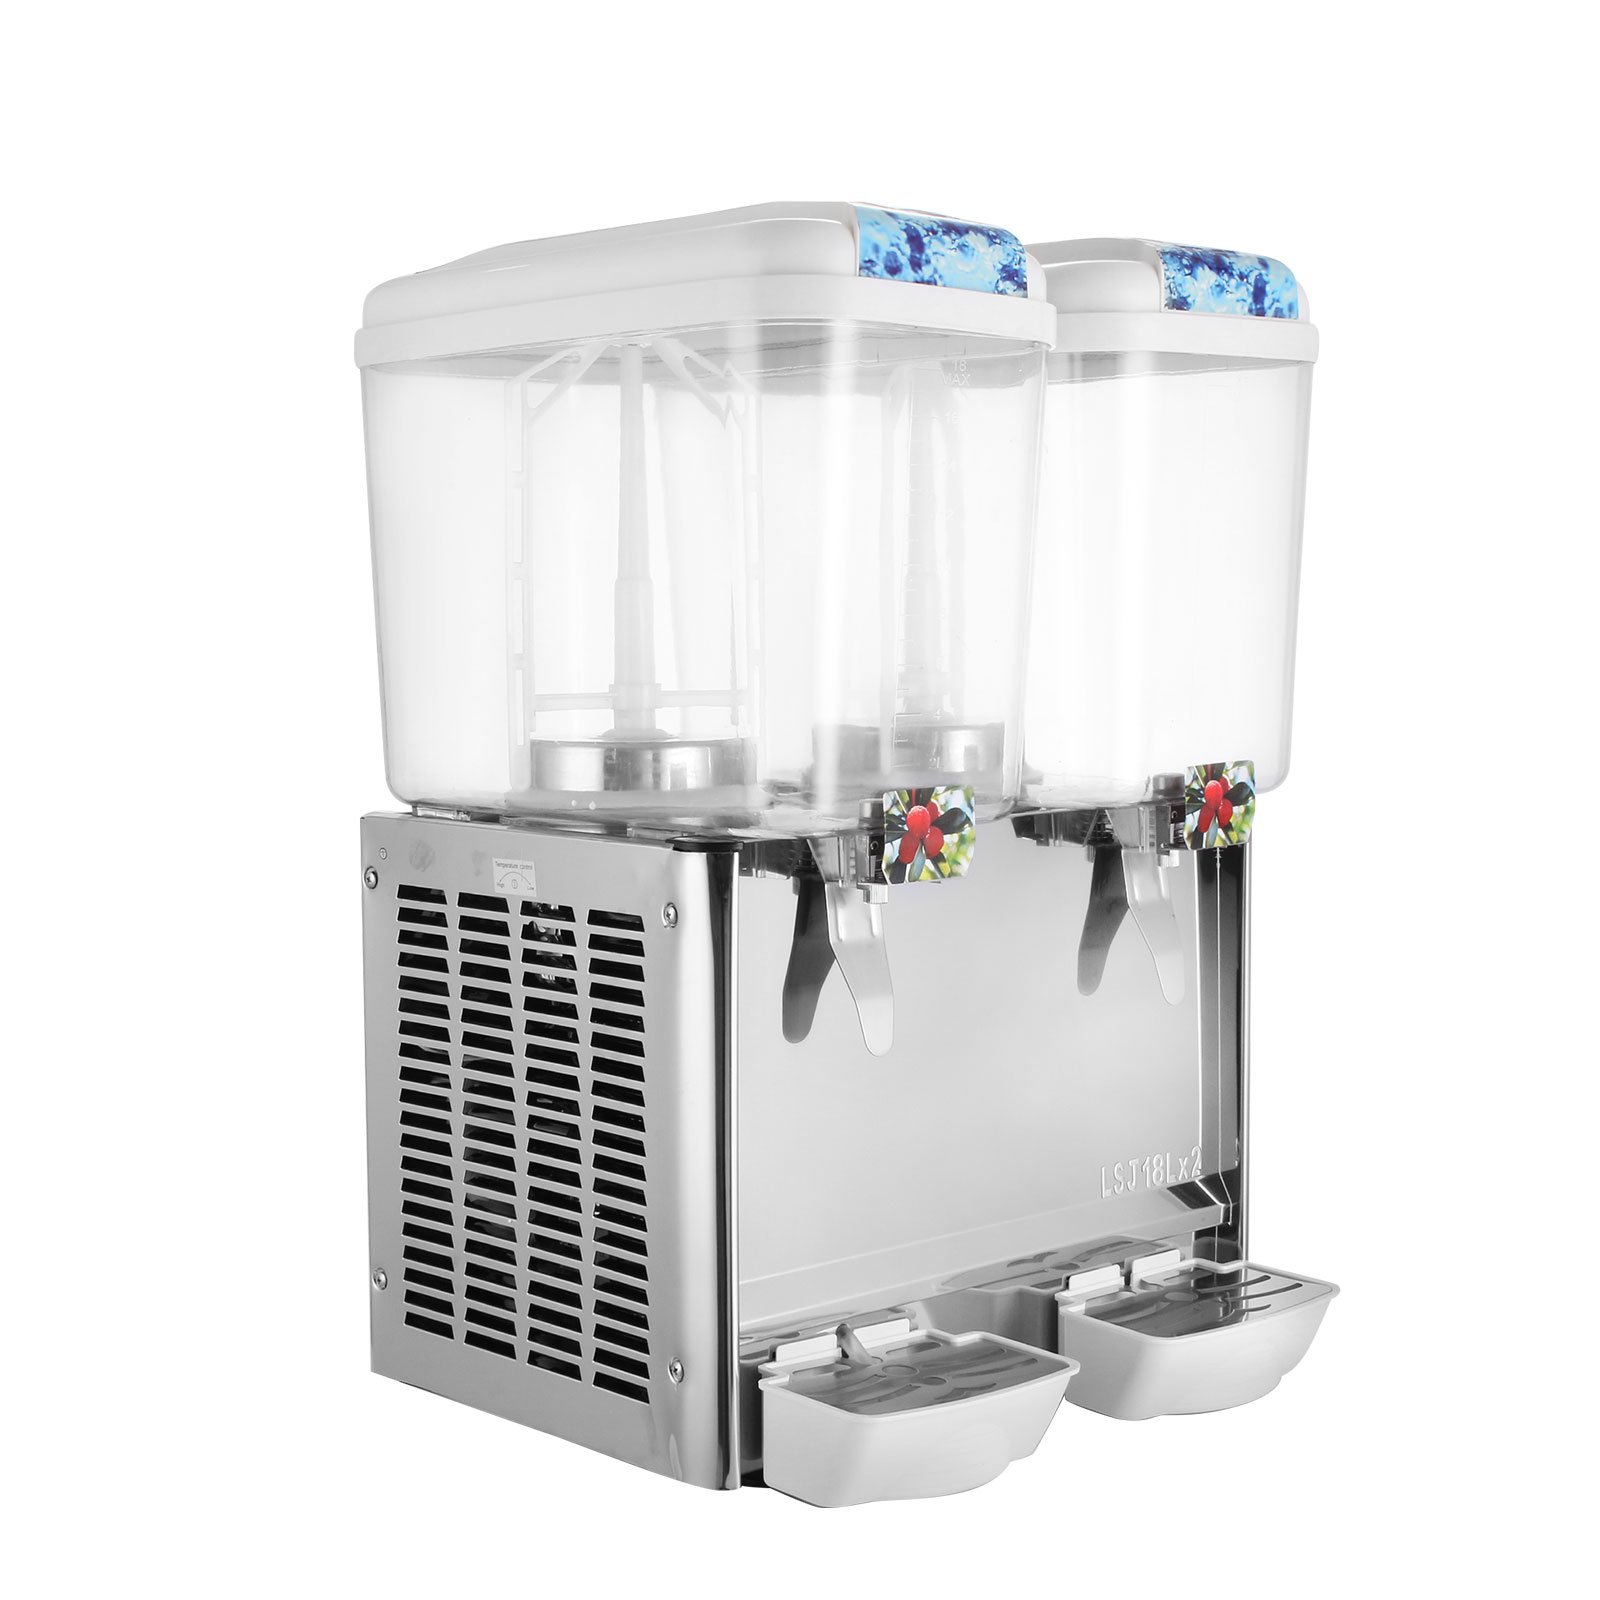 BestEquip Juice Dispenser Two Tanks 9.5 Gallon Beverage Dispenser 280W Cold Fruit Juice Beverage Commercial Beverage Dispenser 18 Liter Per Tank